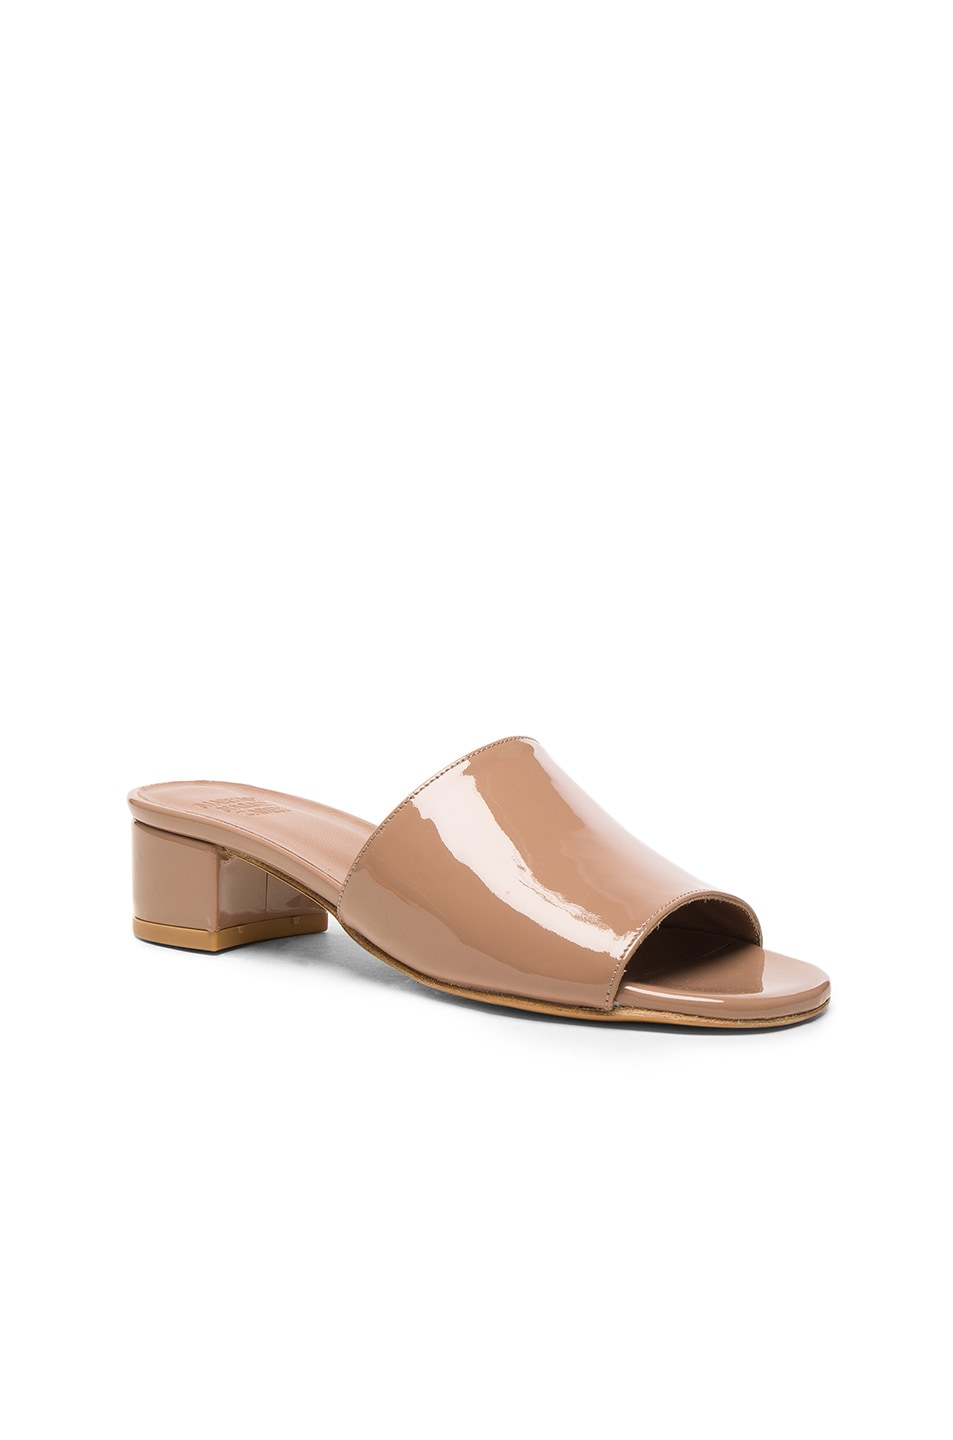 Image 2 of Maryam Nassir Zadeh Patent Leather Sophie Slide Heels in Taupe Patent